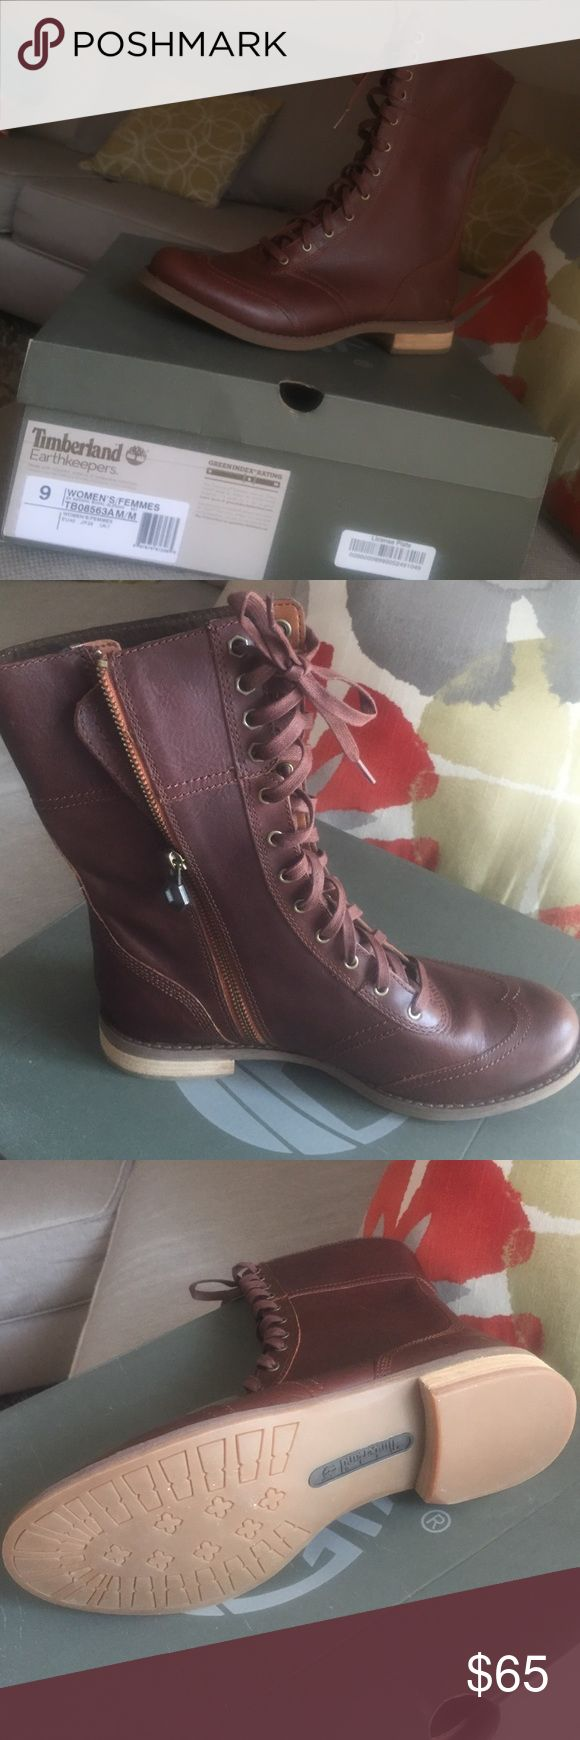 Women's Timberland Boot Brown, long ankle boot. NEVER WORN, one scuff mark, and a side zipper Timberland Shoes Winter & Rain Boots